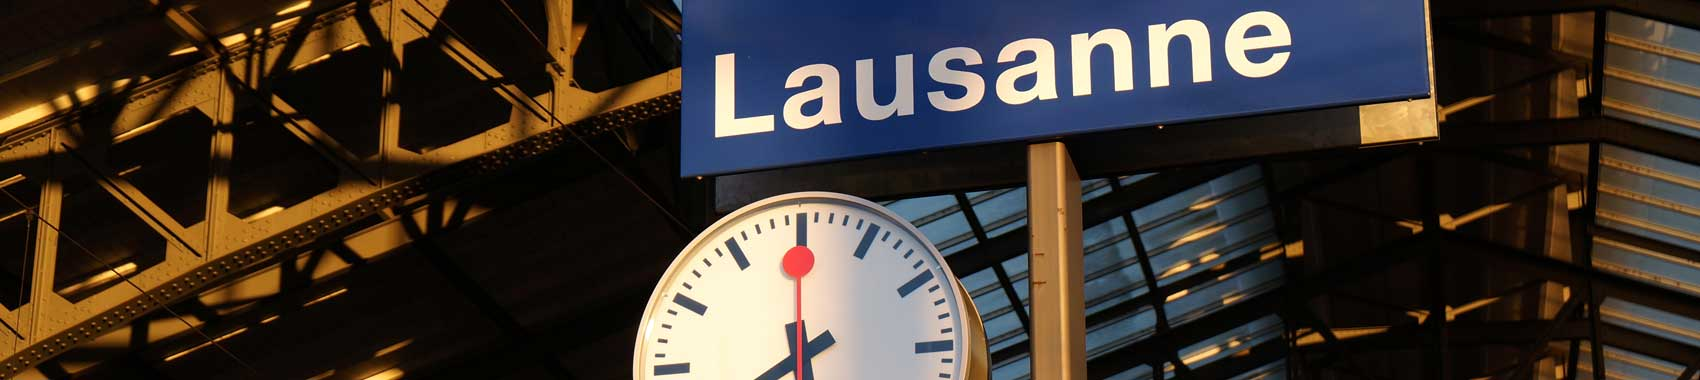 Small Cell for Lausanne Railway Station